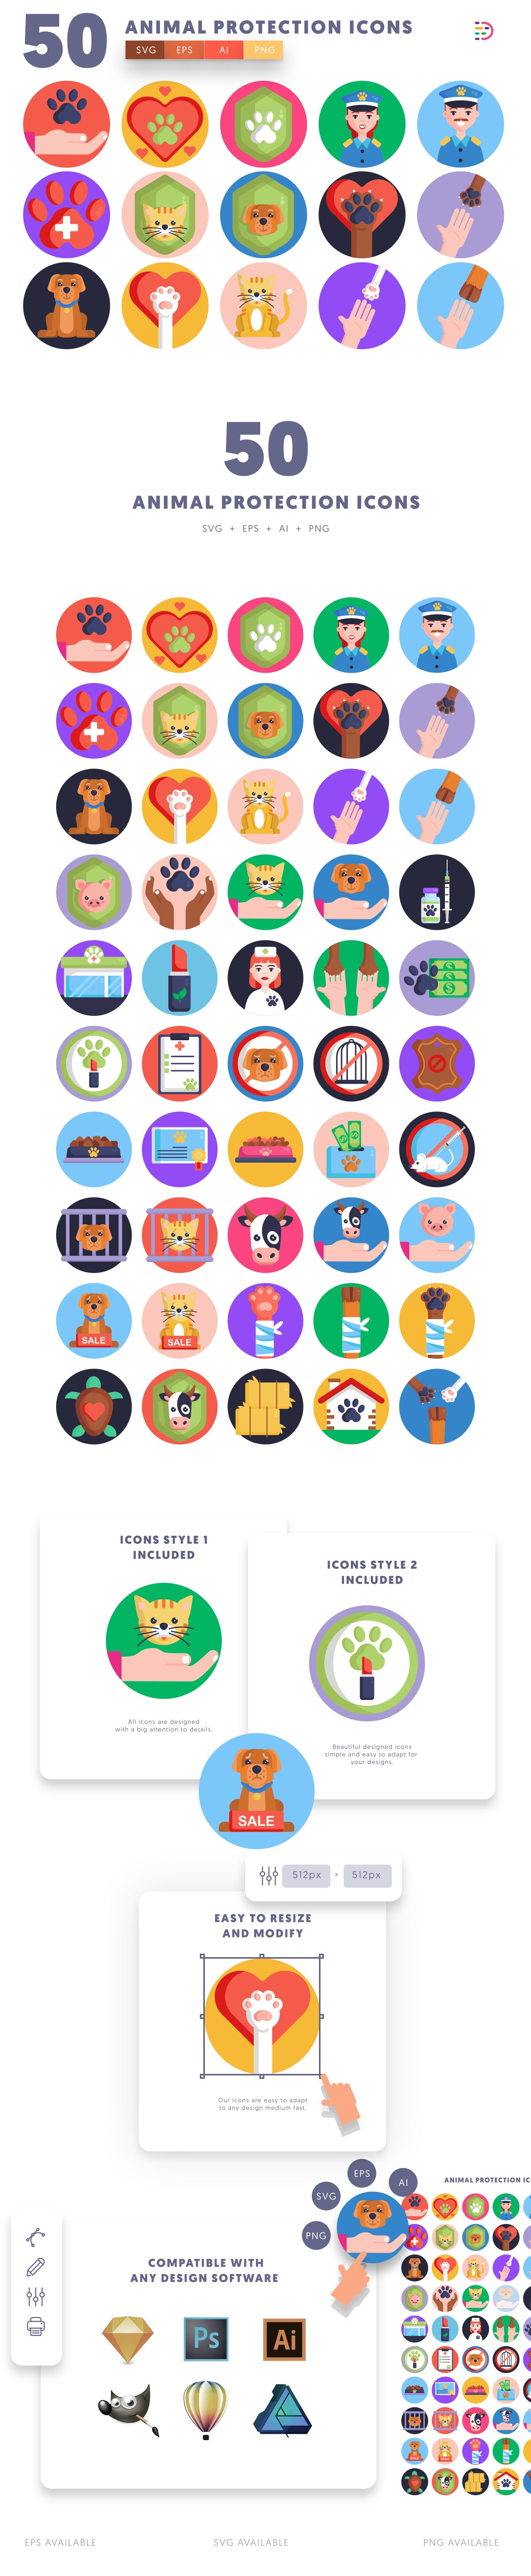 Animal Protection icons info graphic